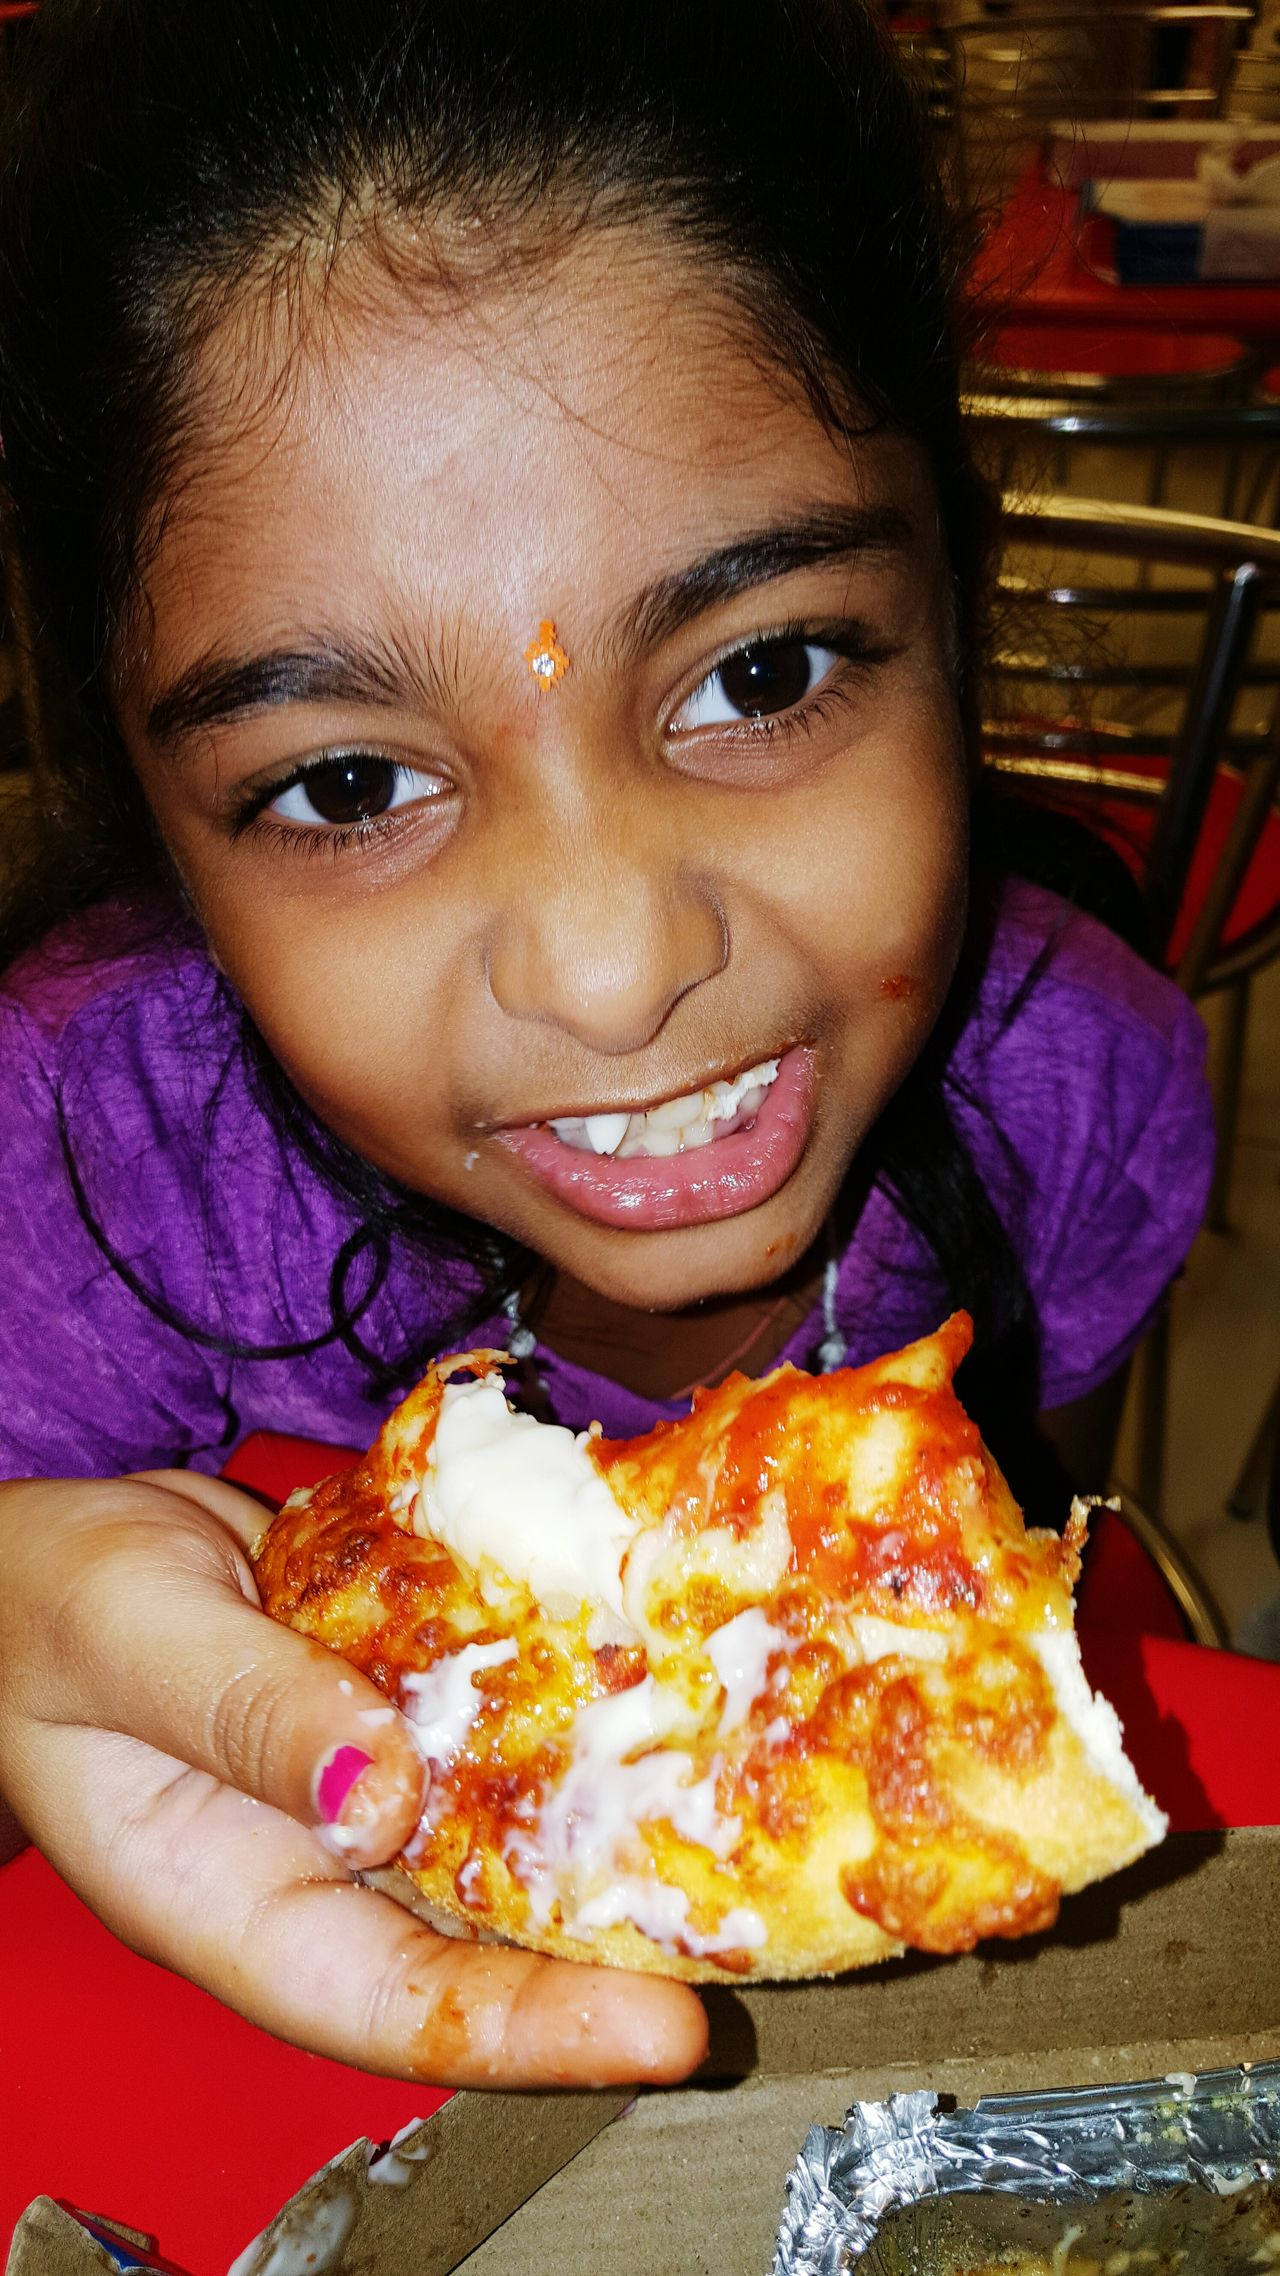 The Portraitist - 2016 EyeEm Awards Pizza Portrait Photography Portrait Of A Girl Pizza🍕 Cheese So Interesting Eyeem4photography EyeEm Gallery Young Girl Eyeem Photography EyeEm Pizza Magaritha Eating Yummy Double Cheese Cheesycrust CheesyPizza Fresh From The Oven